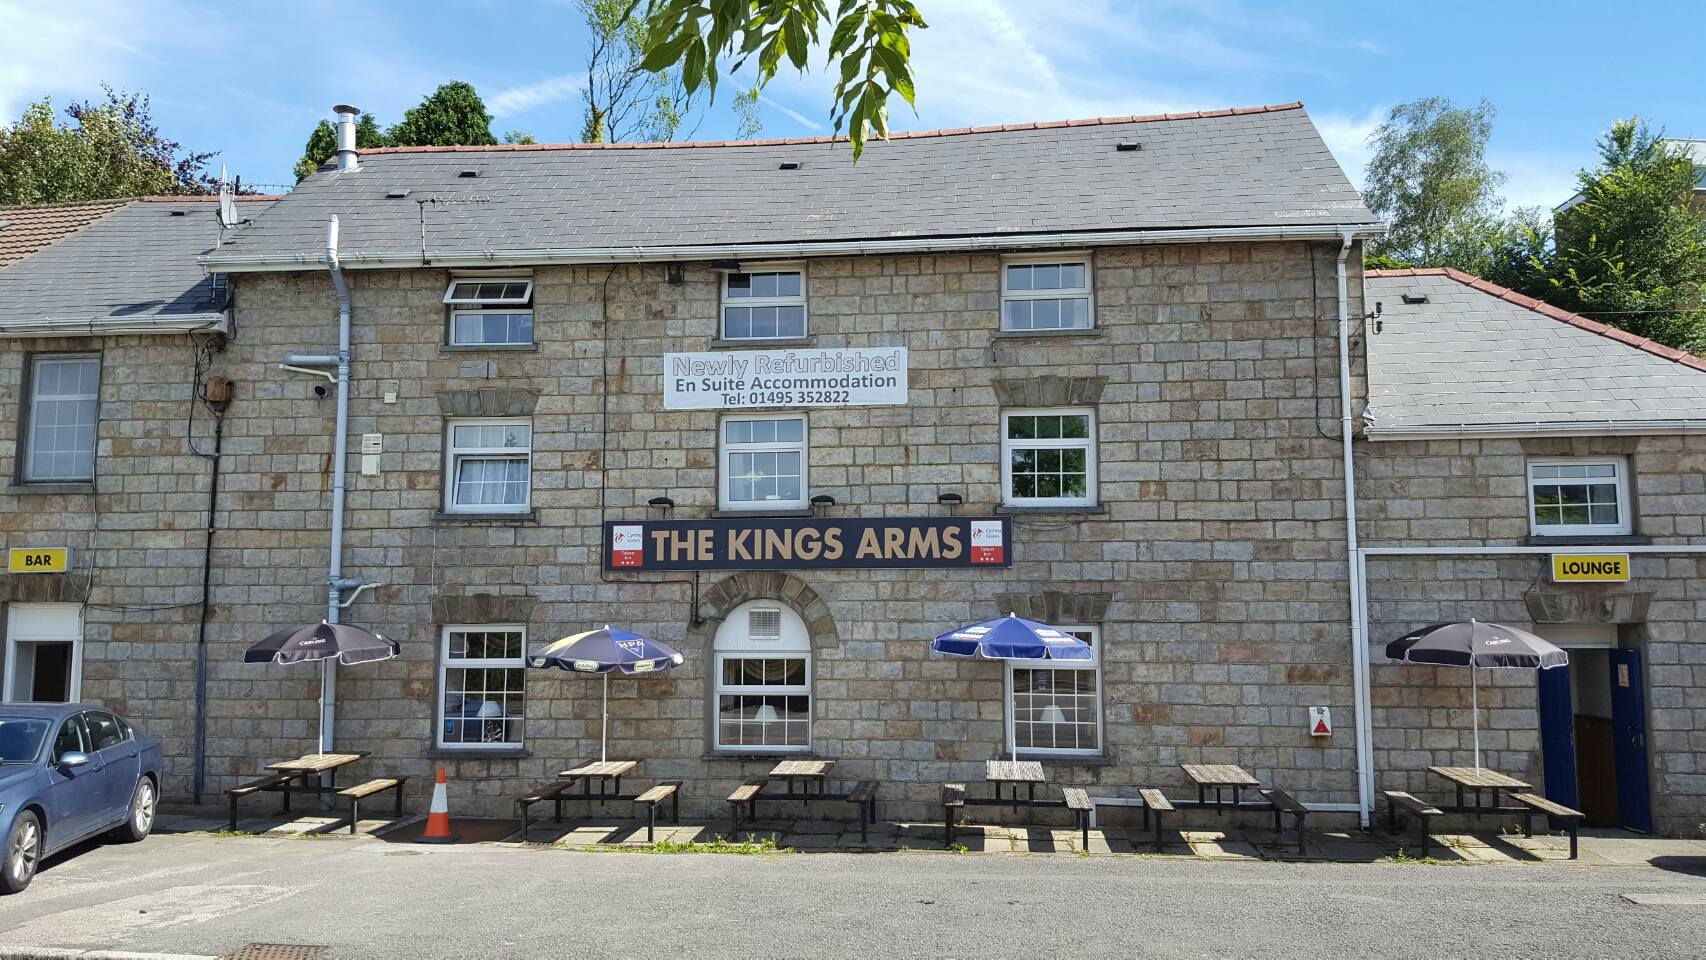 The Kings Arms Ebbw Vale